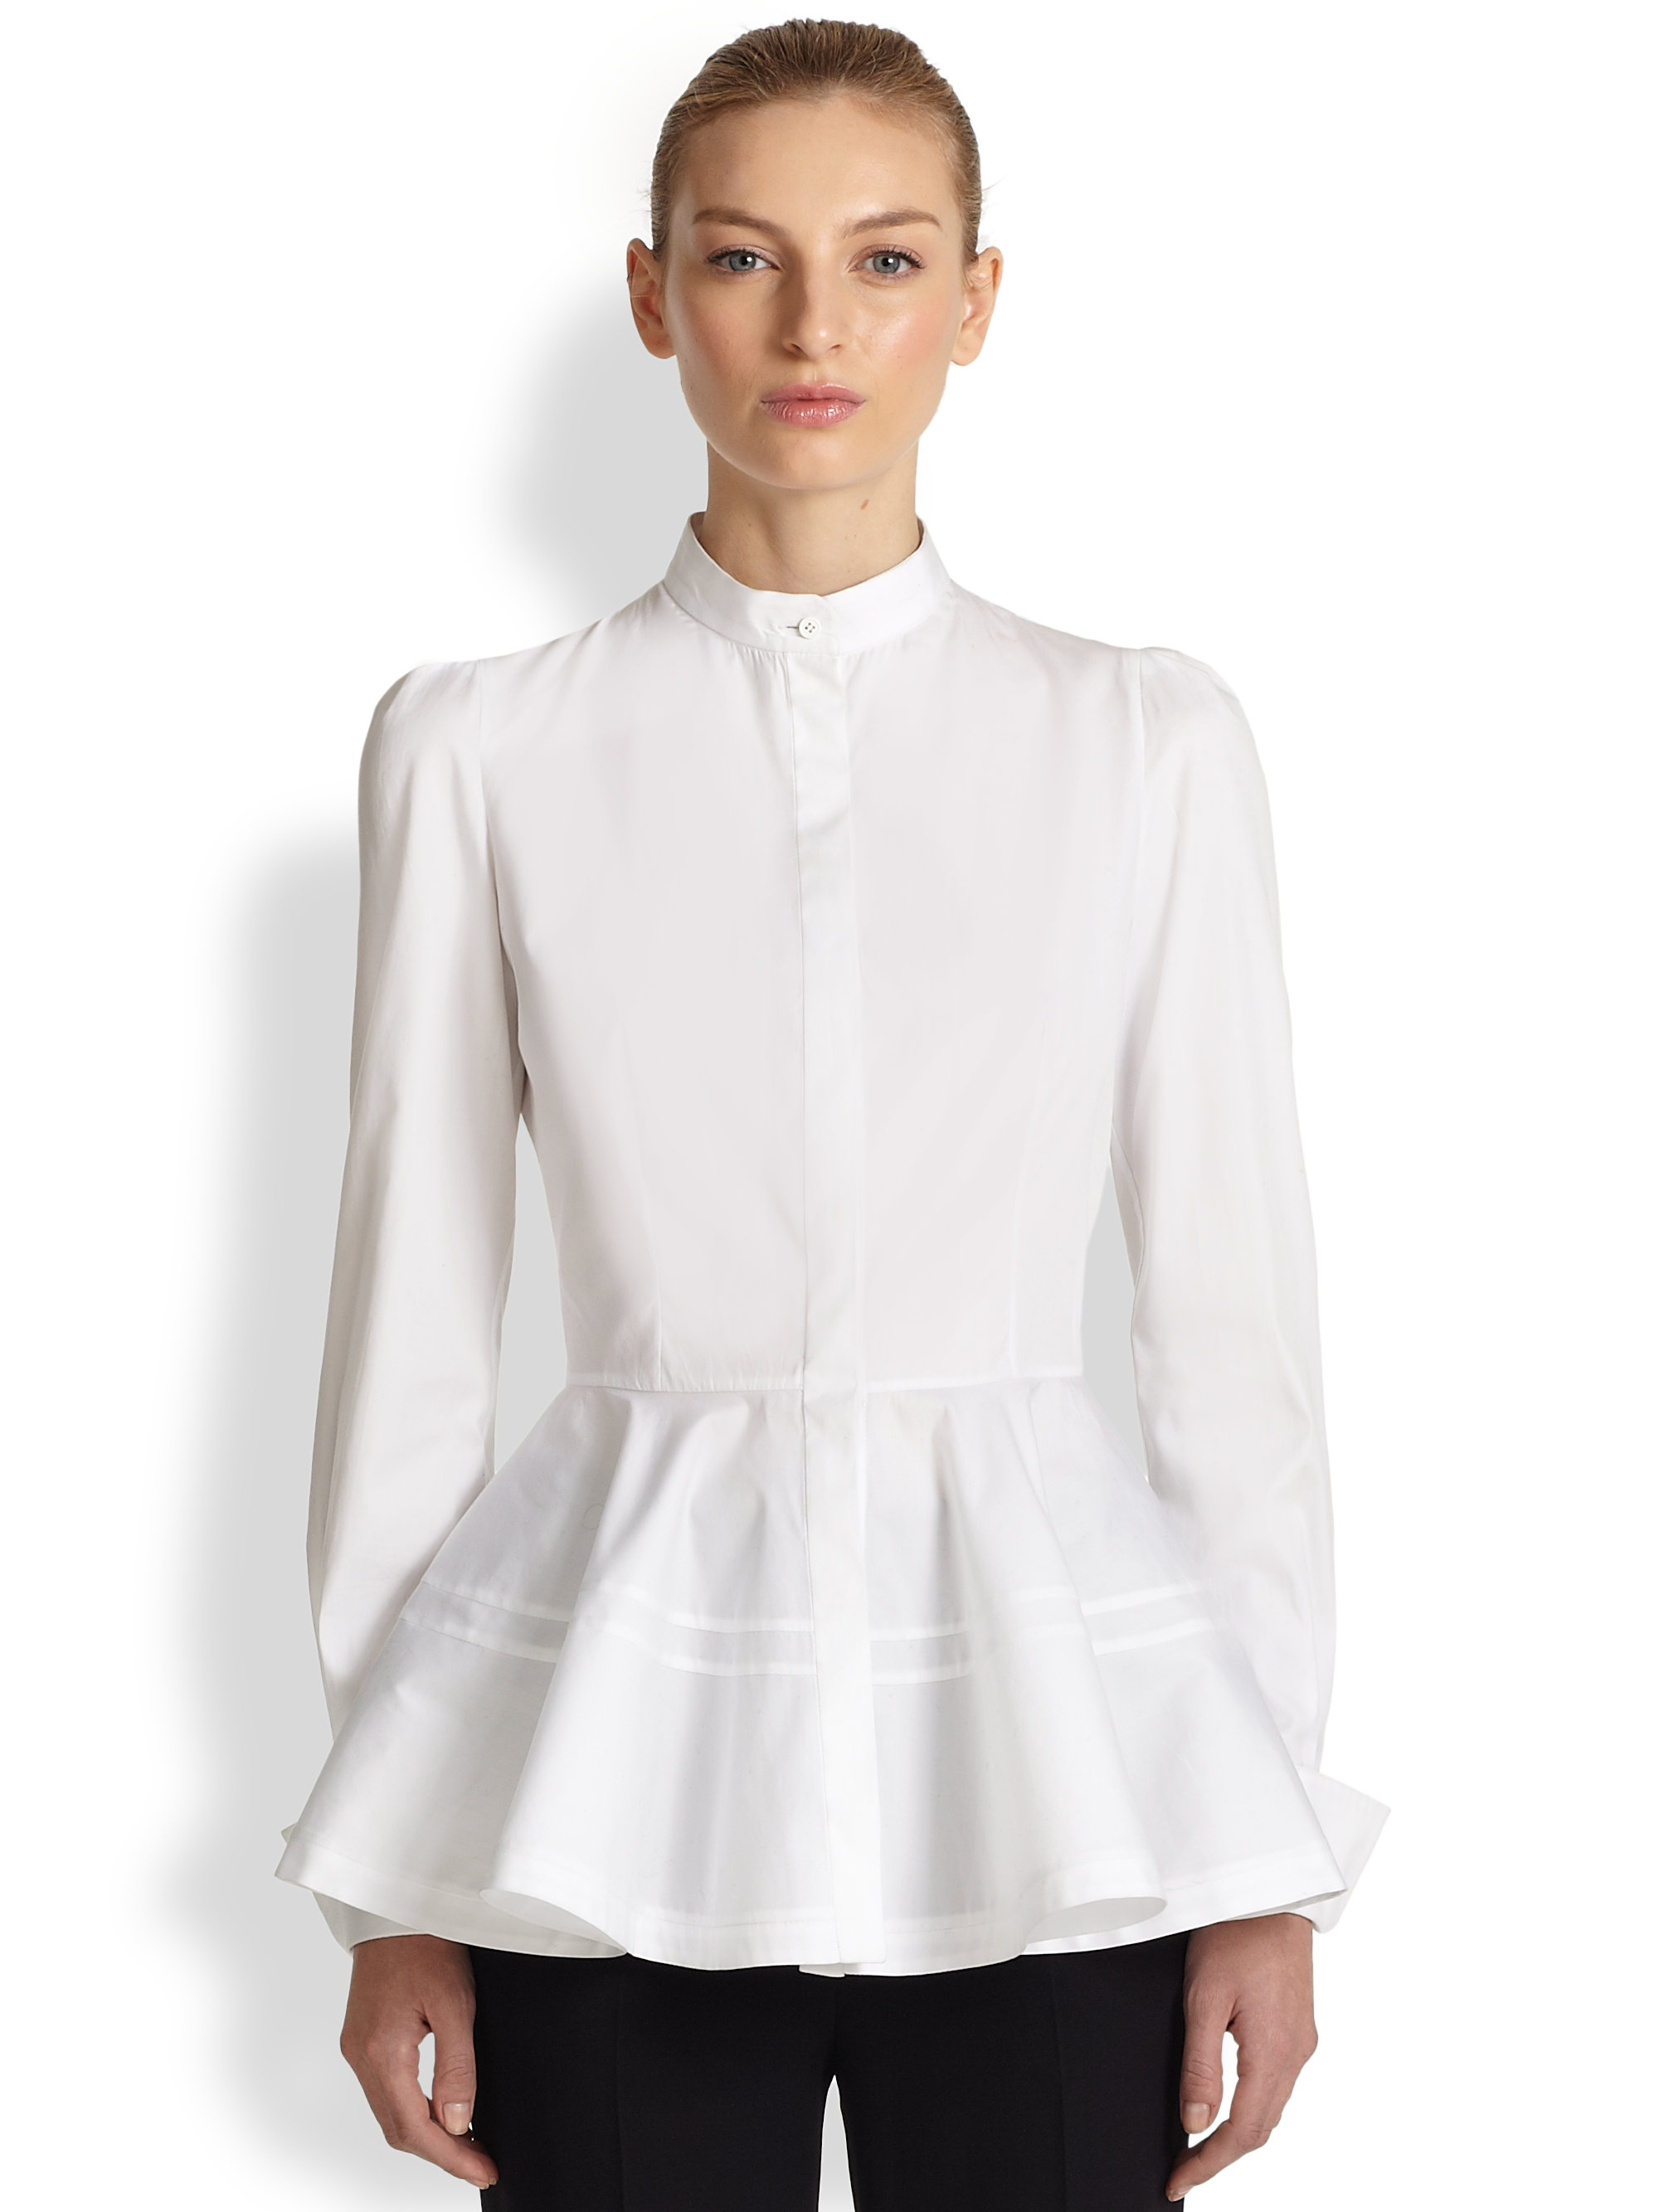 Cheap Huge Surprise Huge Surprise For Sale White Slashed Sleeve Shirt Alexander McQueen Free Shipping Original Discount New Arrival Free Shipping Low Price 7vmqLp